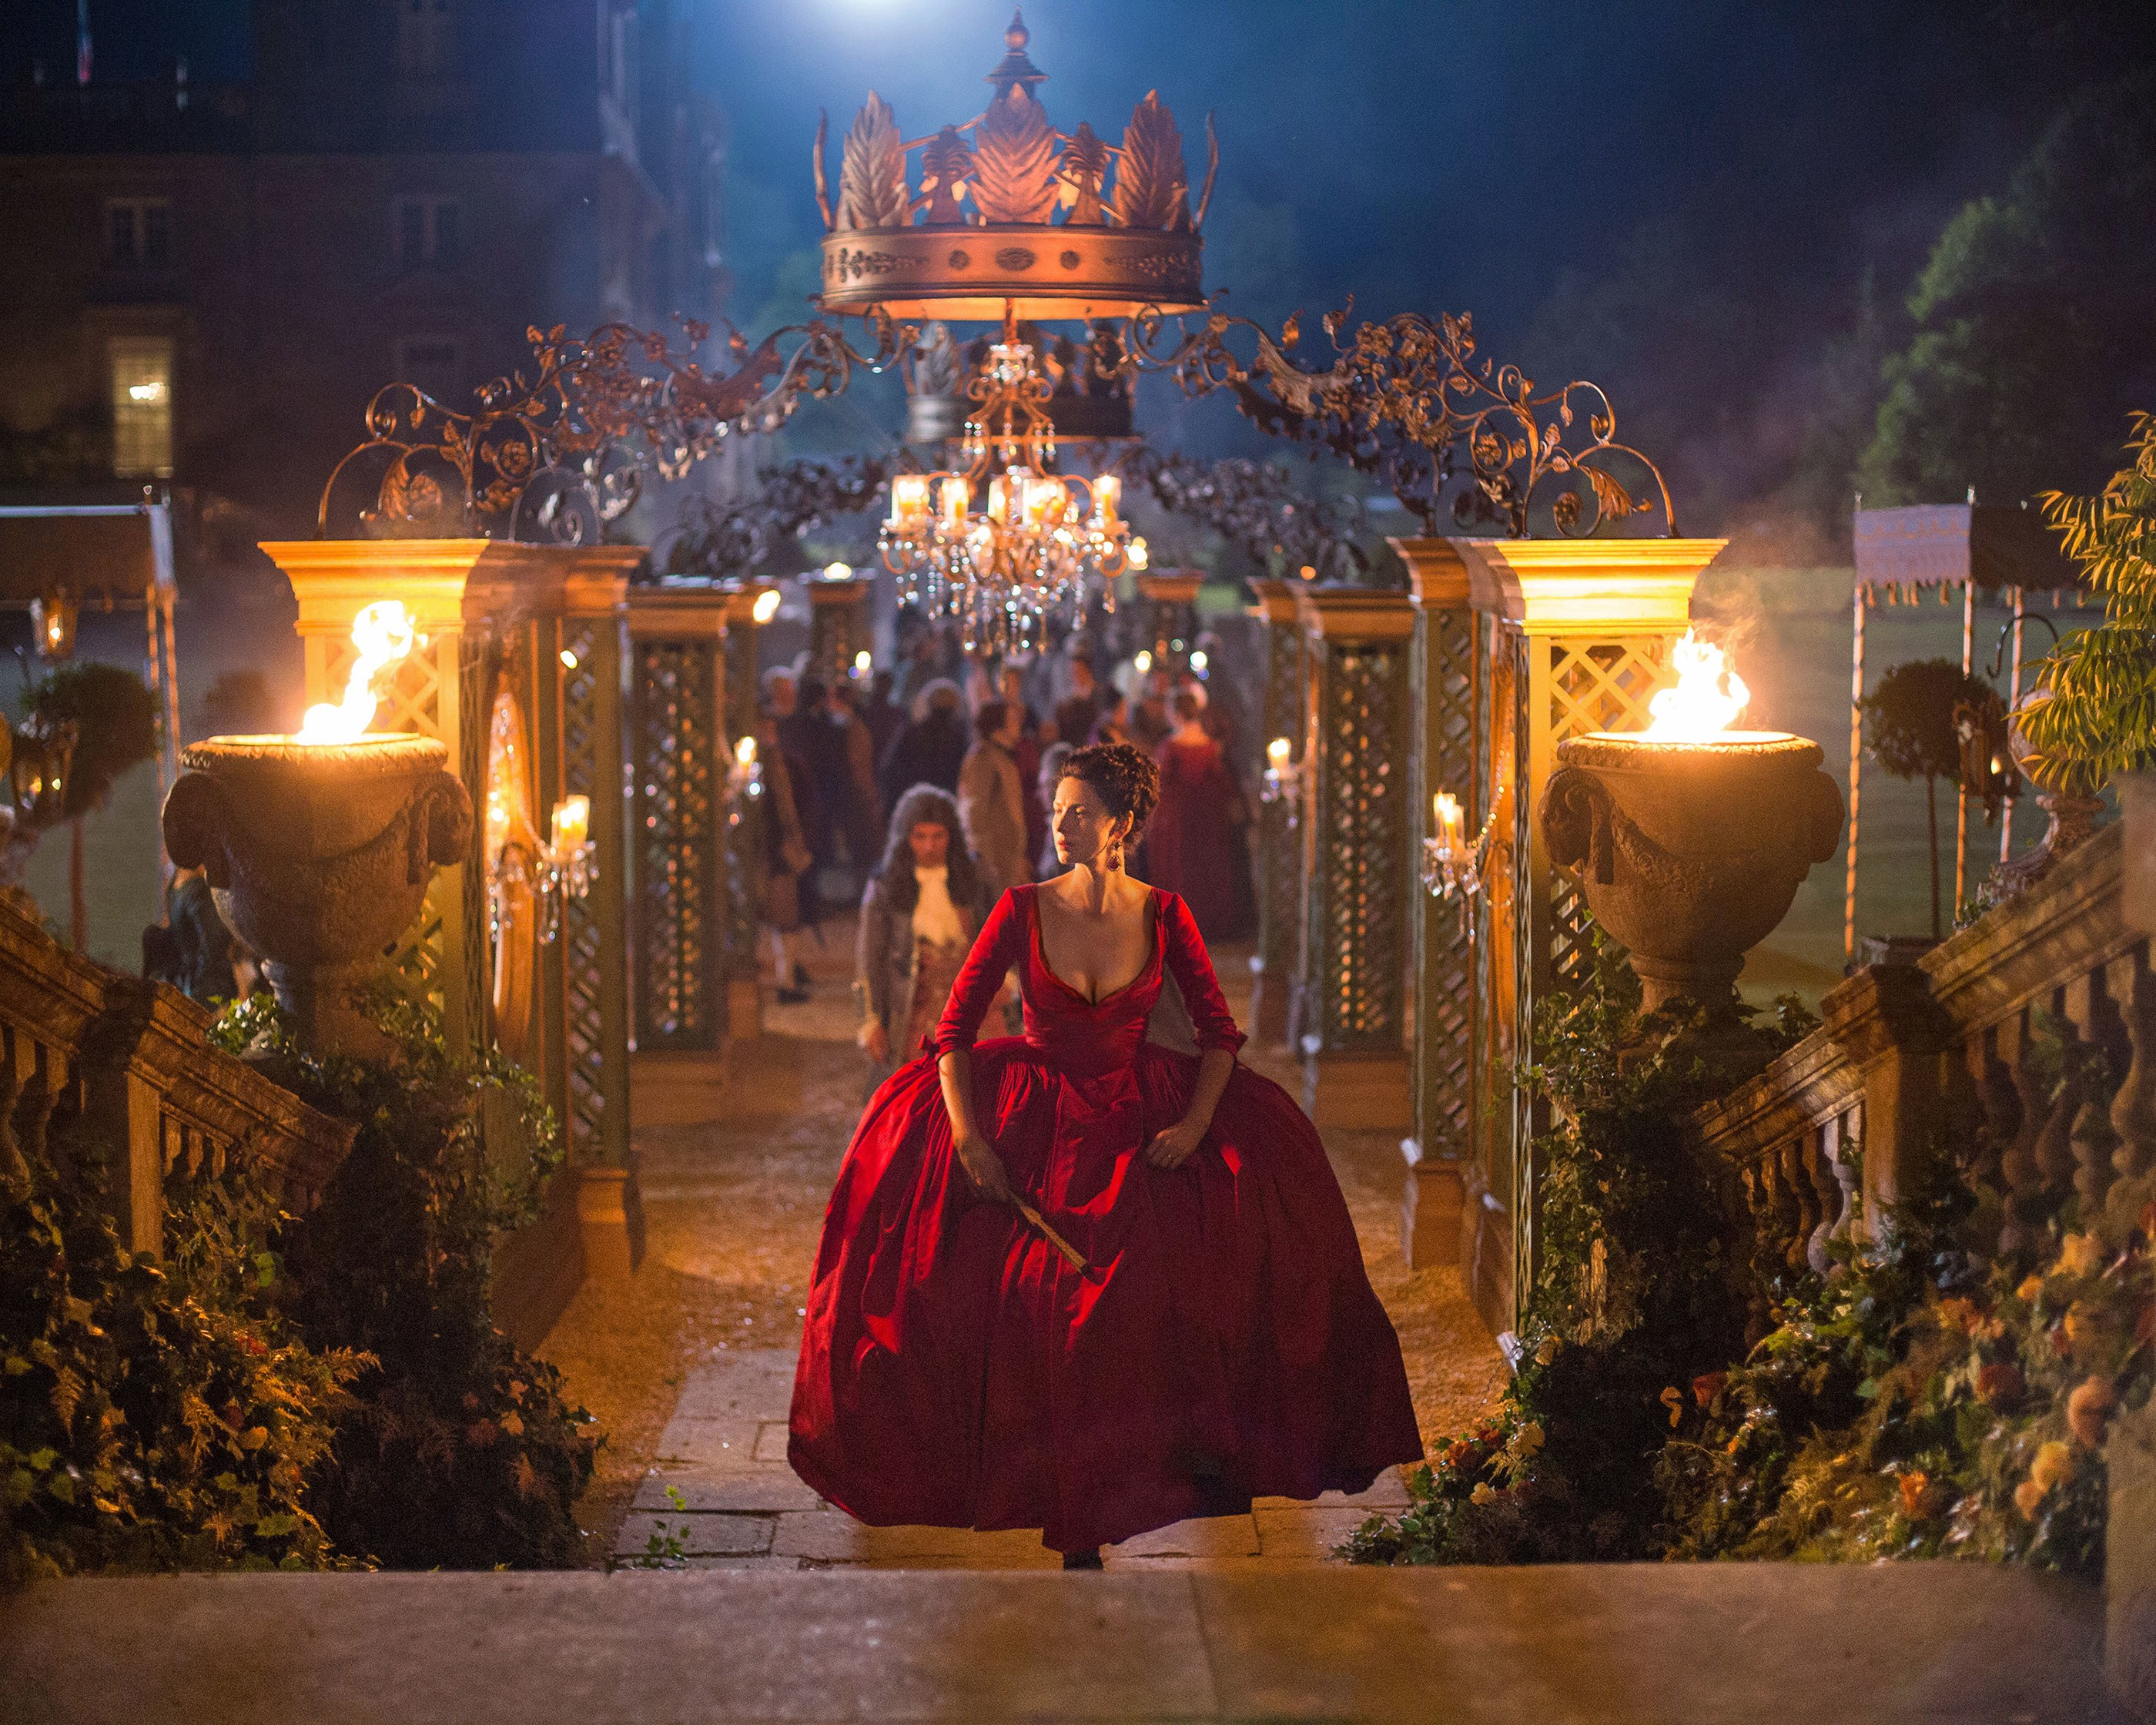 http://media.architecturaldigest.com/photos/5706e213b2d72bc242ccecc2/master/pass/Outlander-second-season-set-design_01.jpg